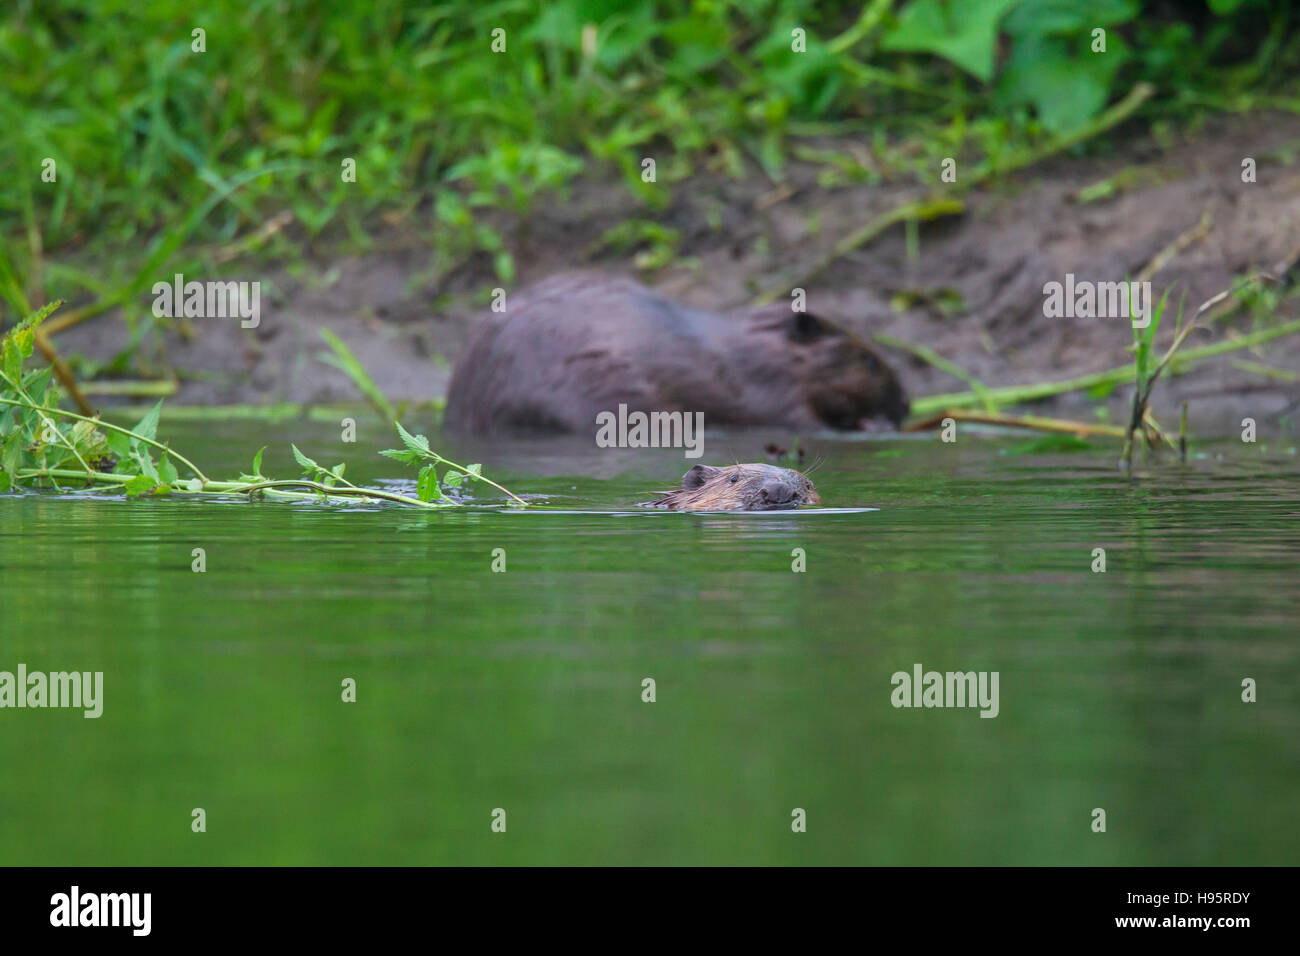 Eurasian beavers / European beaver (Castor fiber) collecting vegetation for food cache in pond - Stock Image